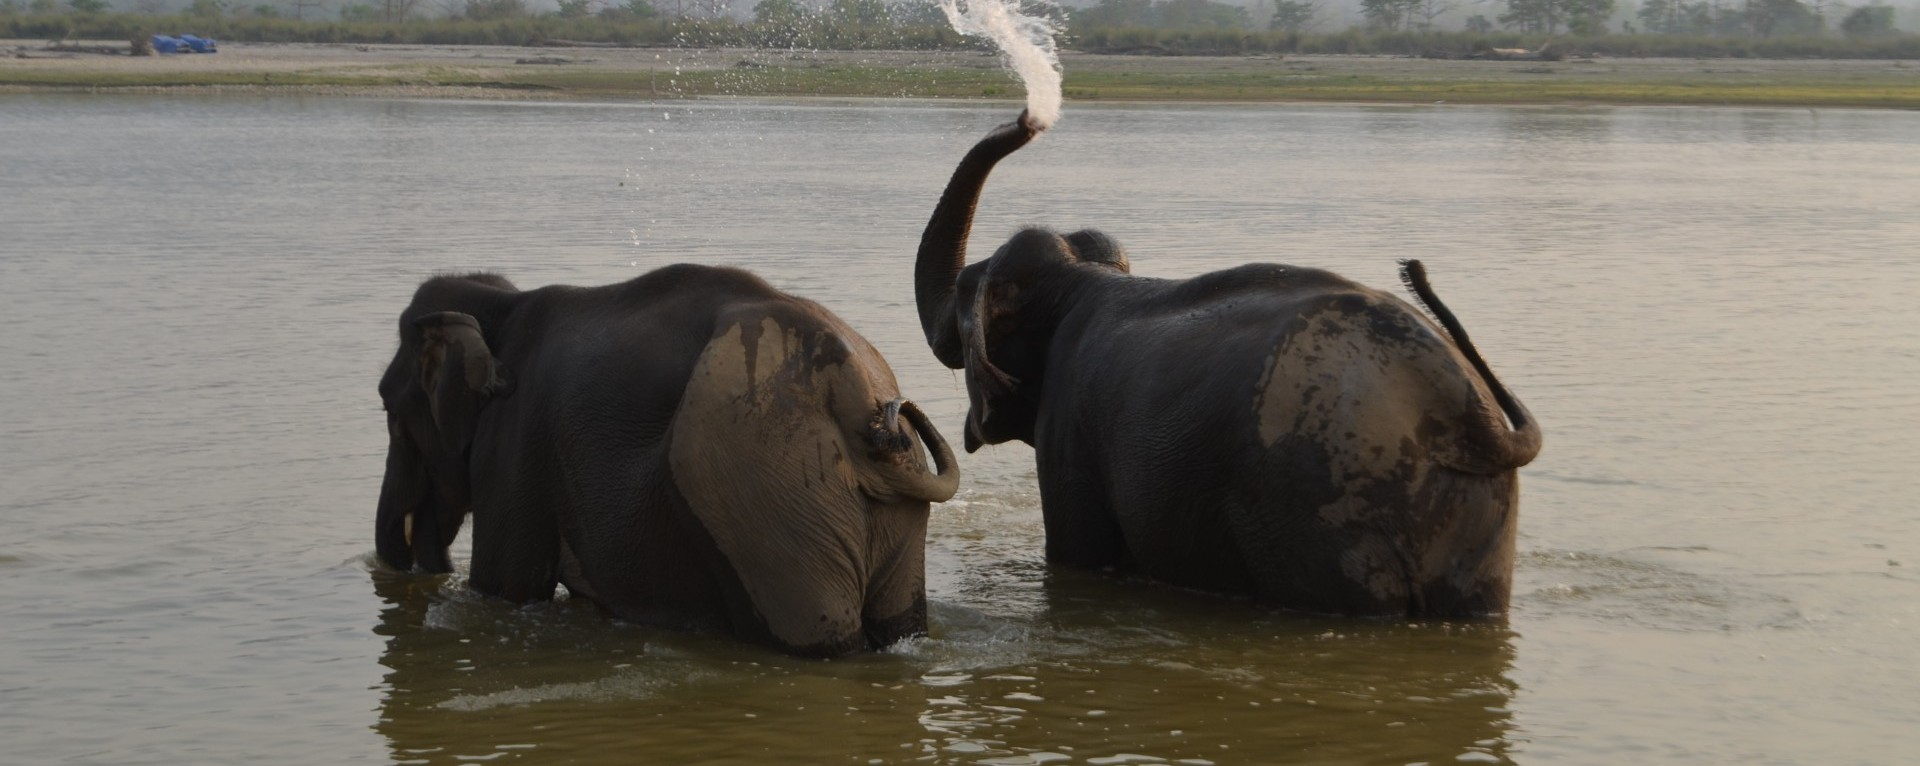 Elephant Shower at Chitwan National Park